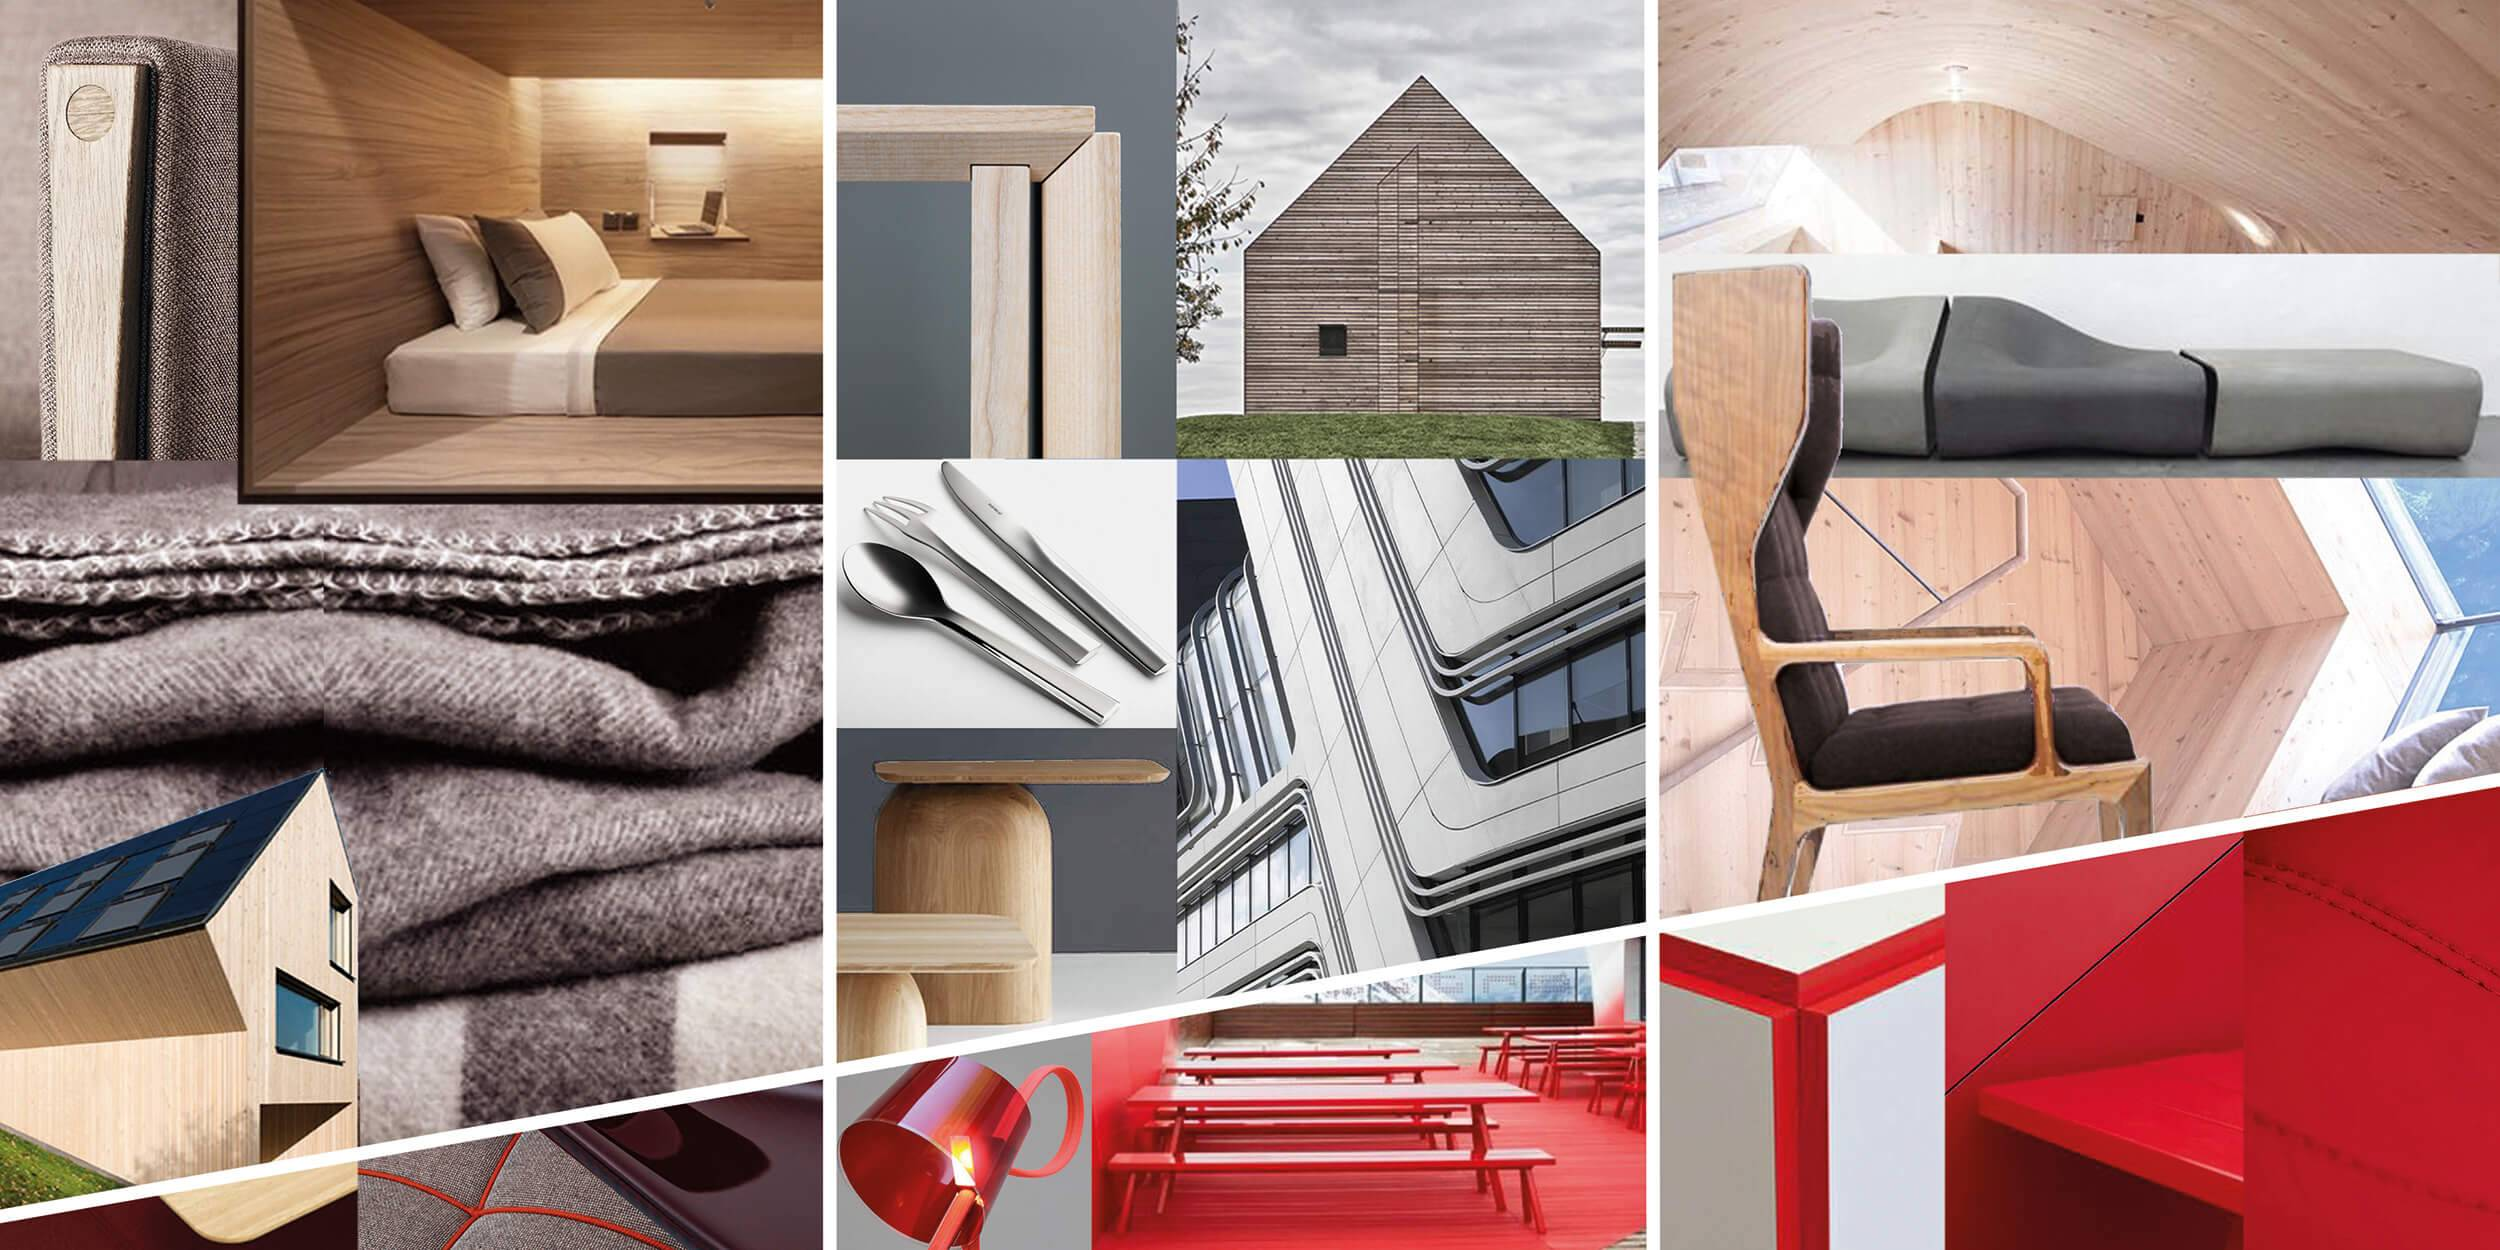 A moodboard of inspiration images showing architectural details, textures and colours